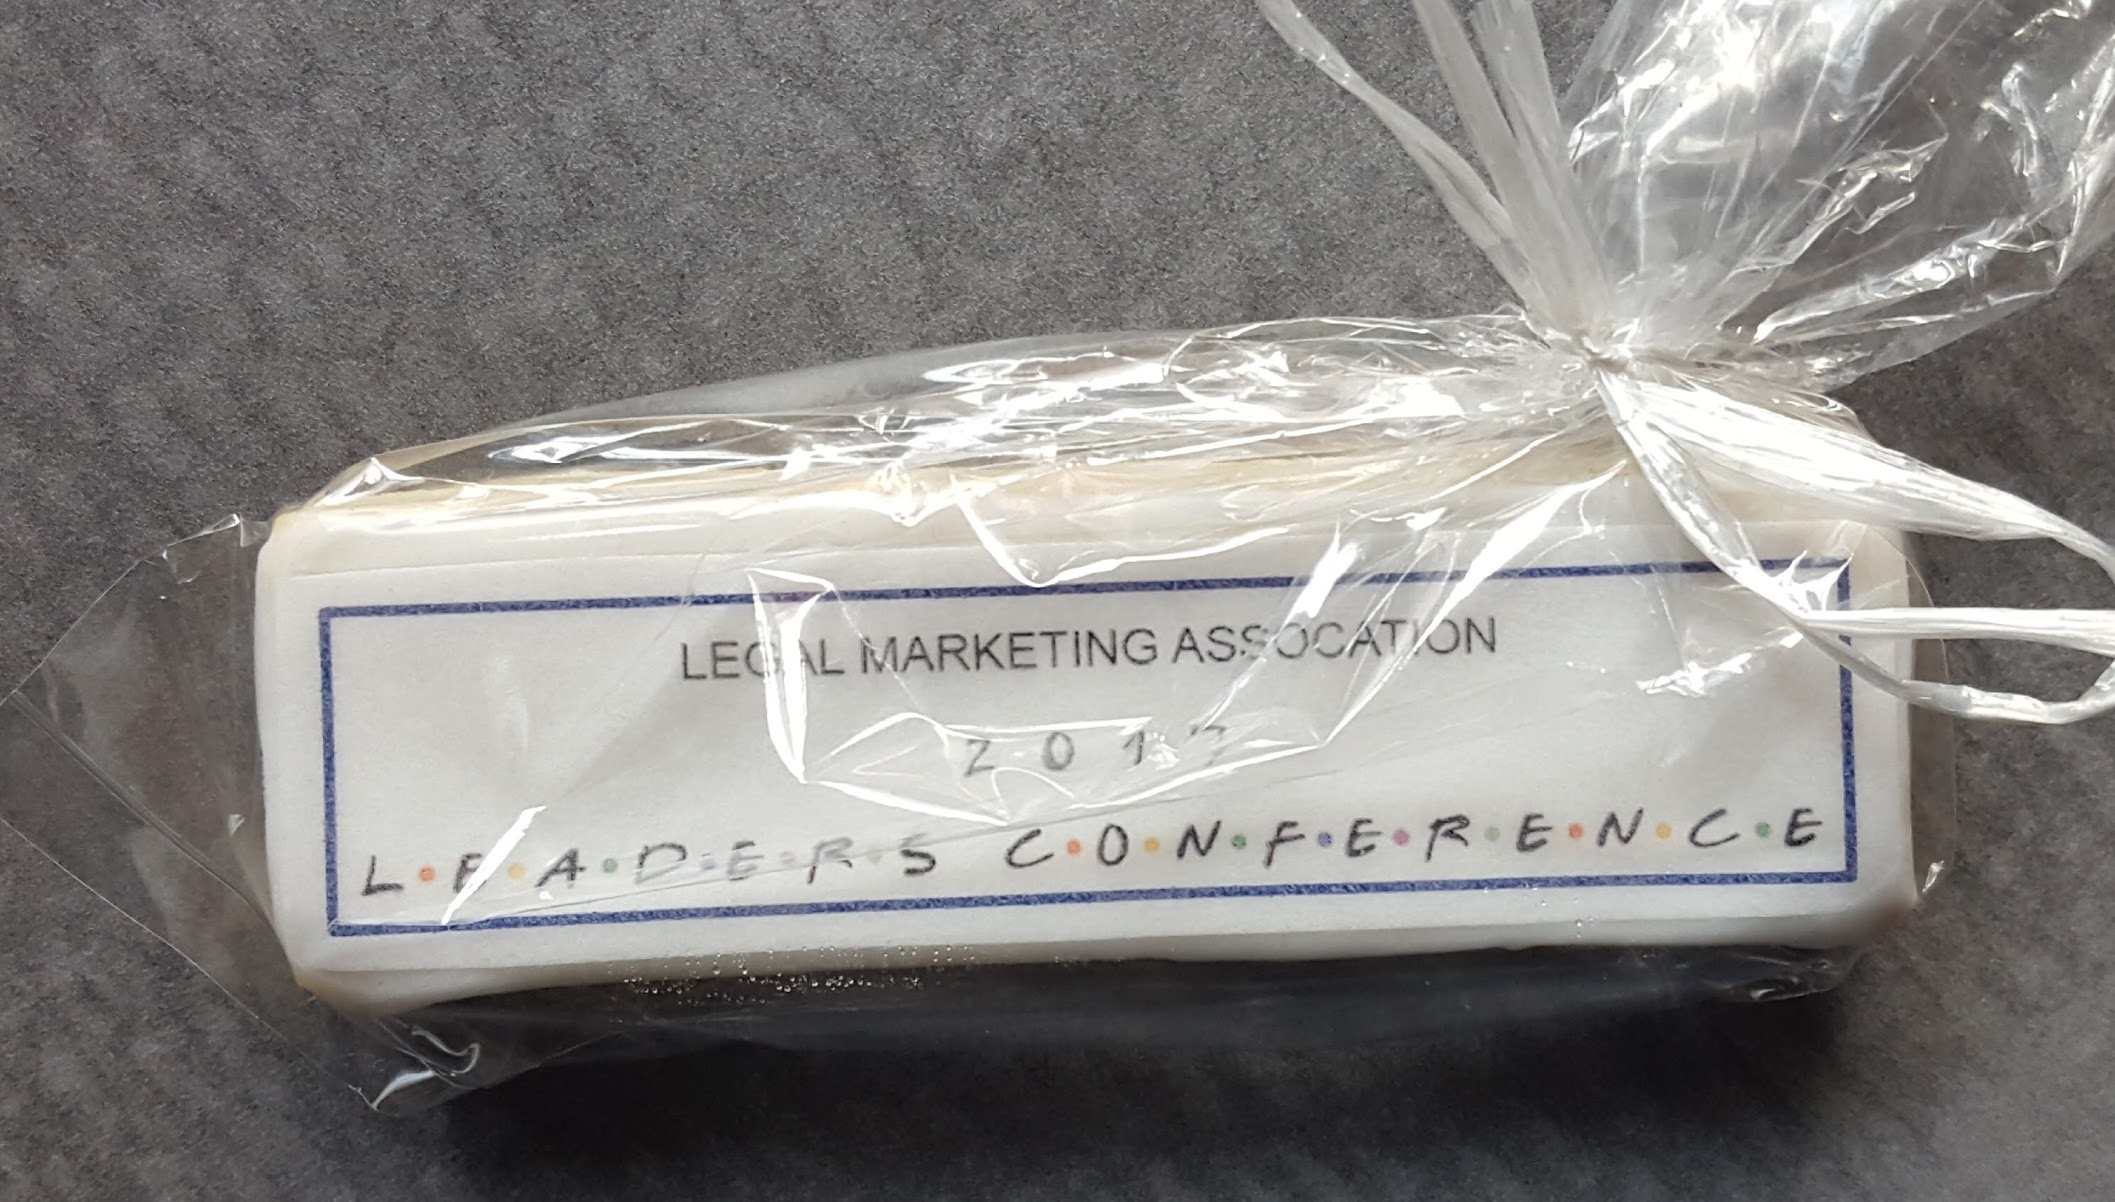 Legal Marketing Association 2017 Conference